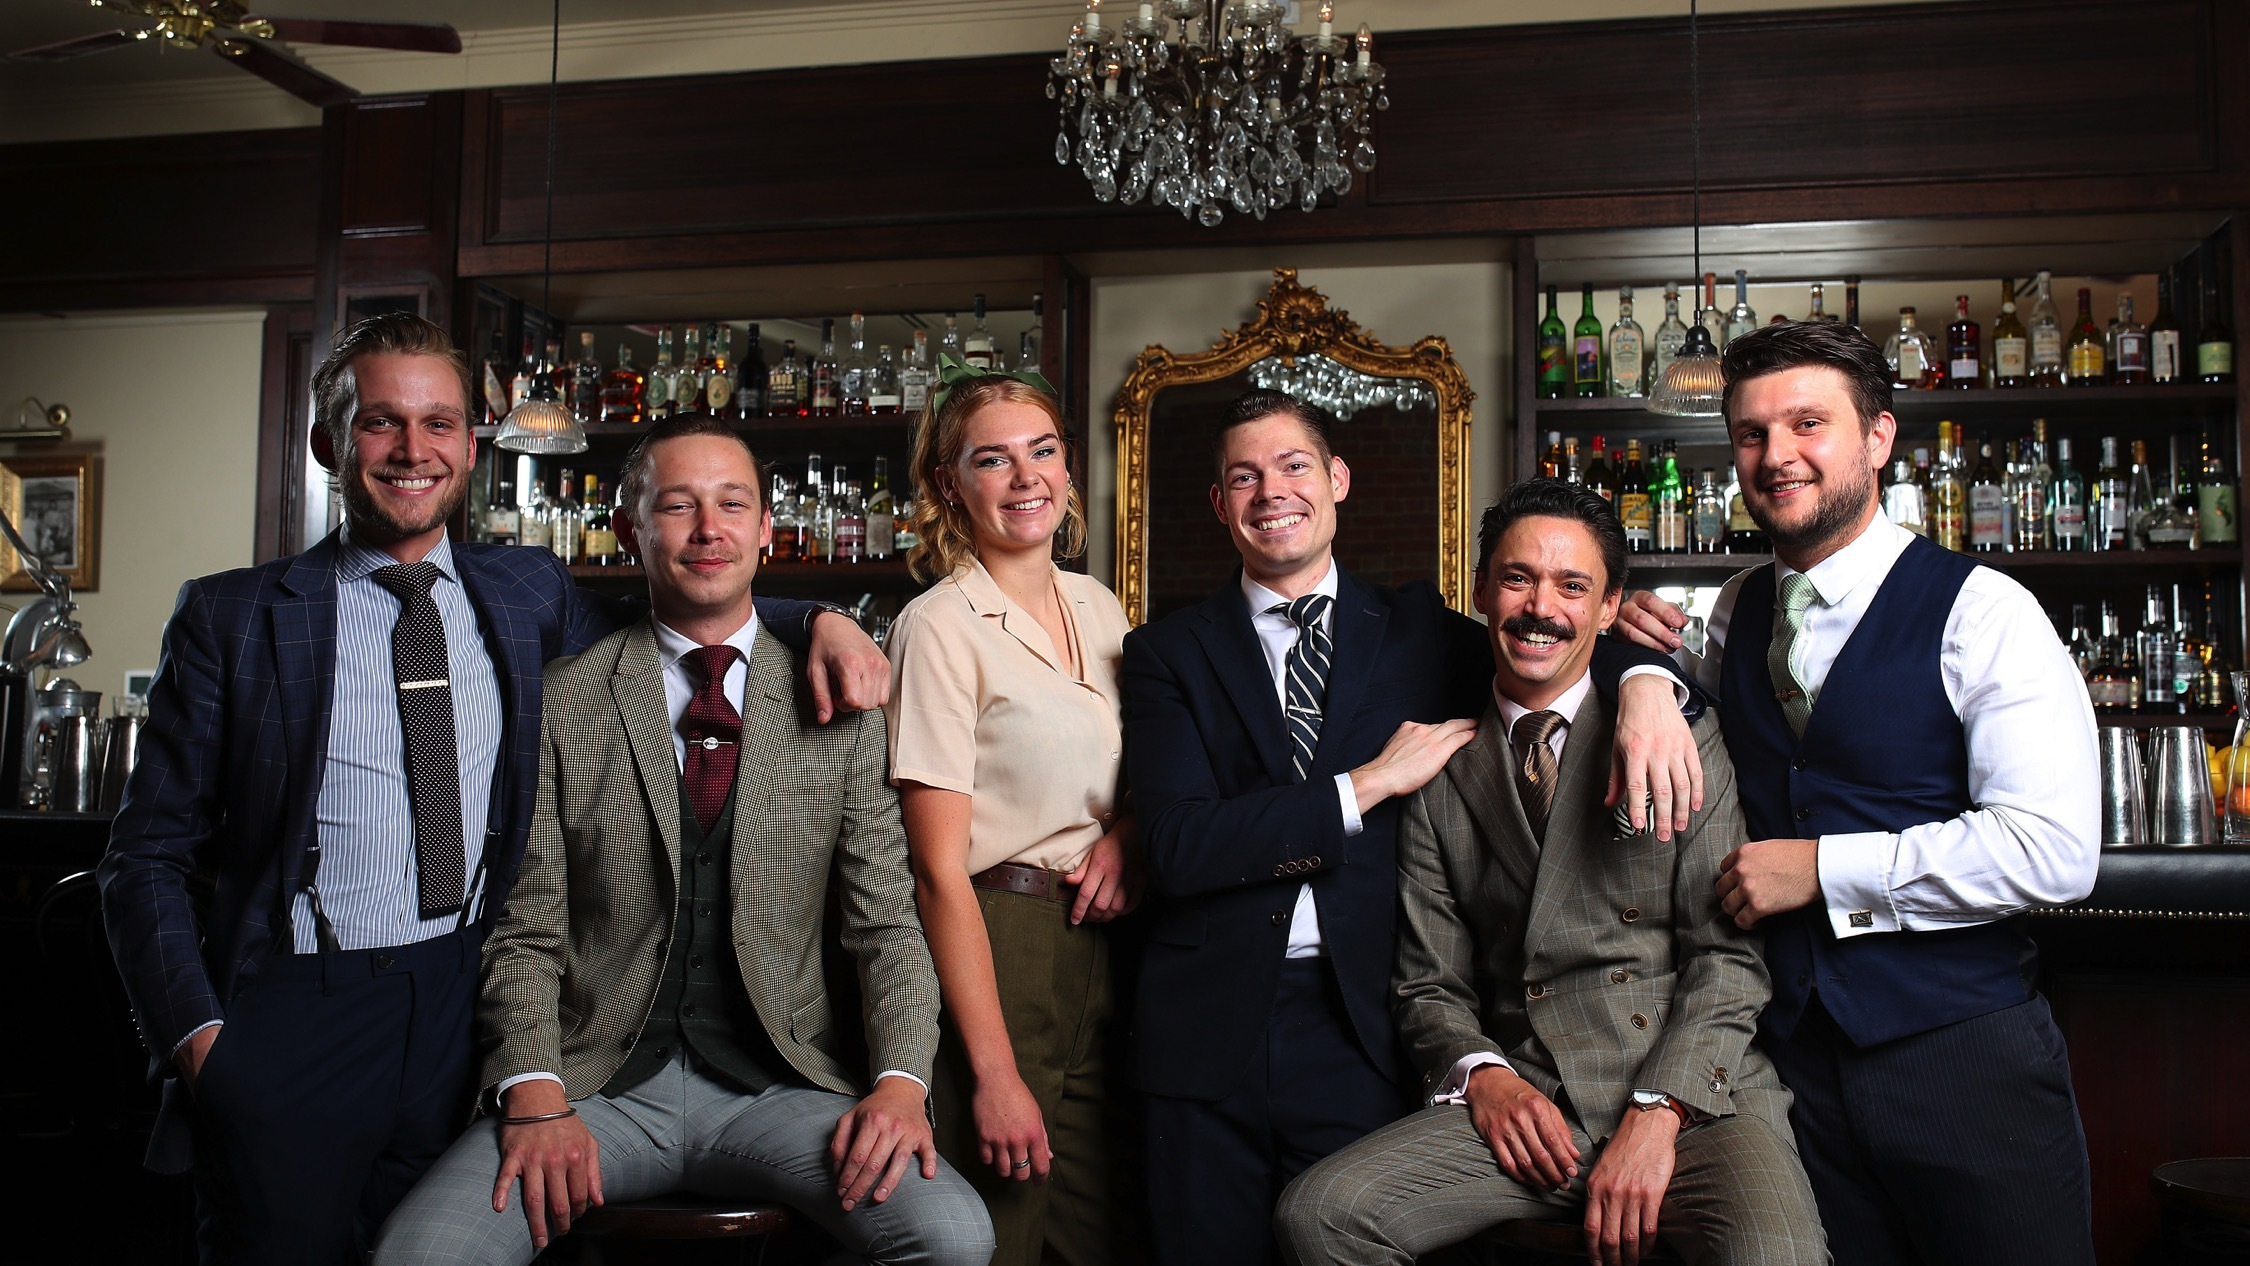 Bar team together at The Everleigh